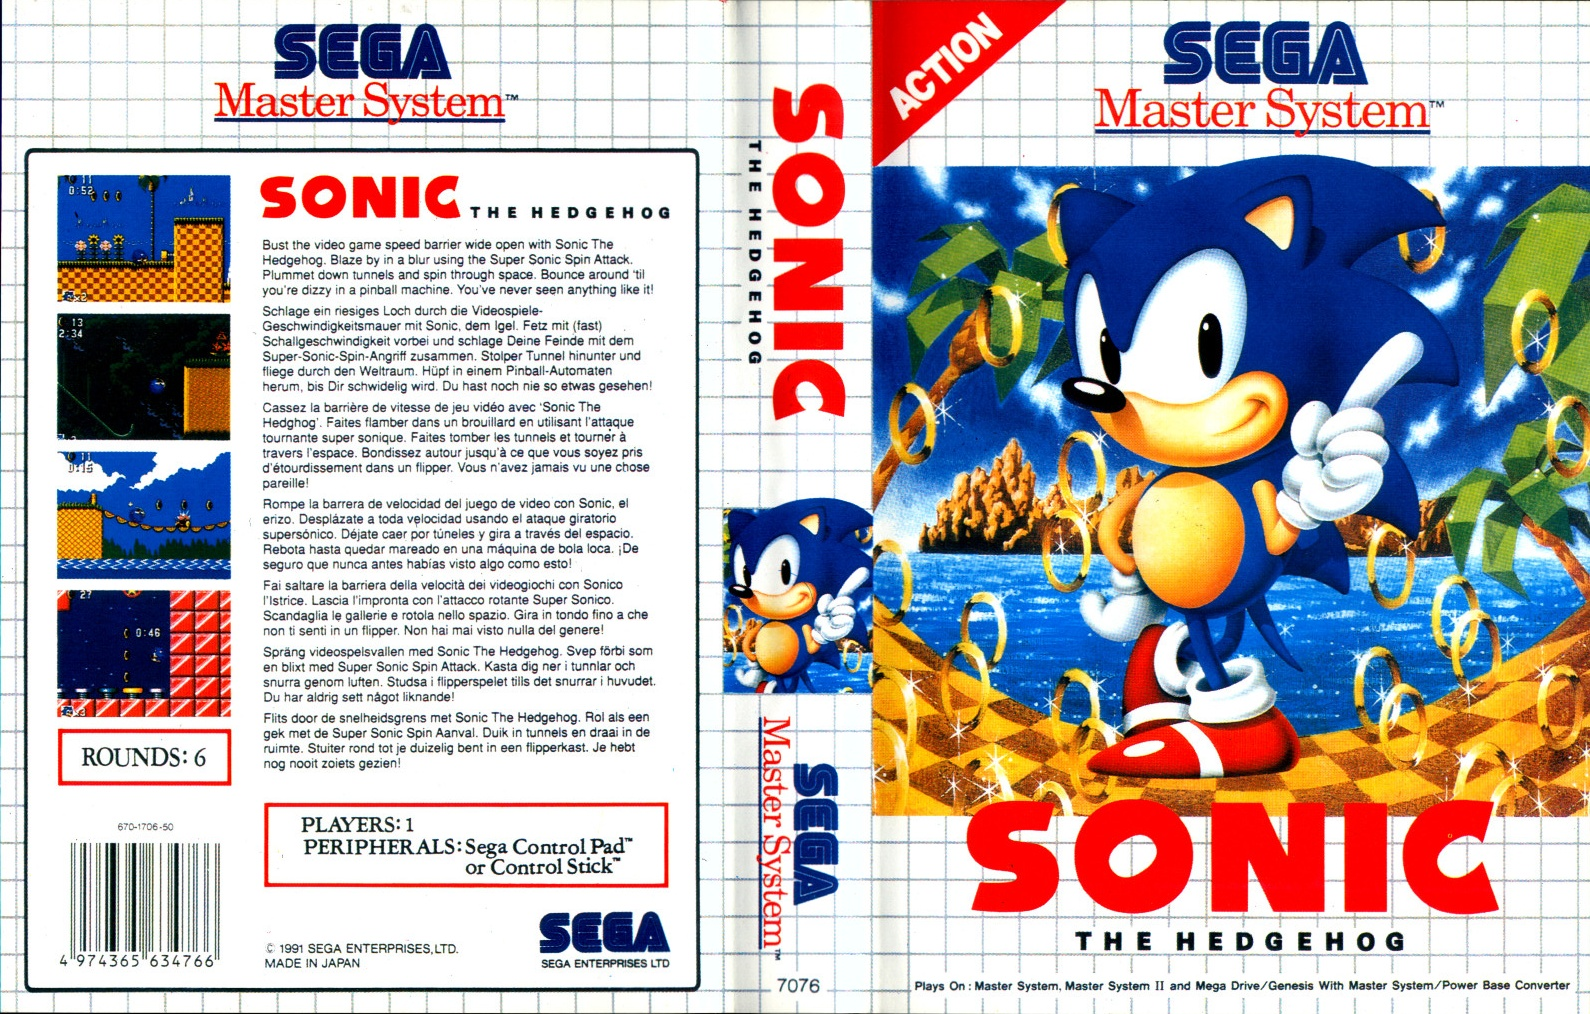 Captain Williams Sonic The Hedgehog Feature Master System Mark Iii And Game Gear